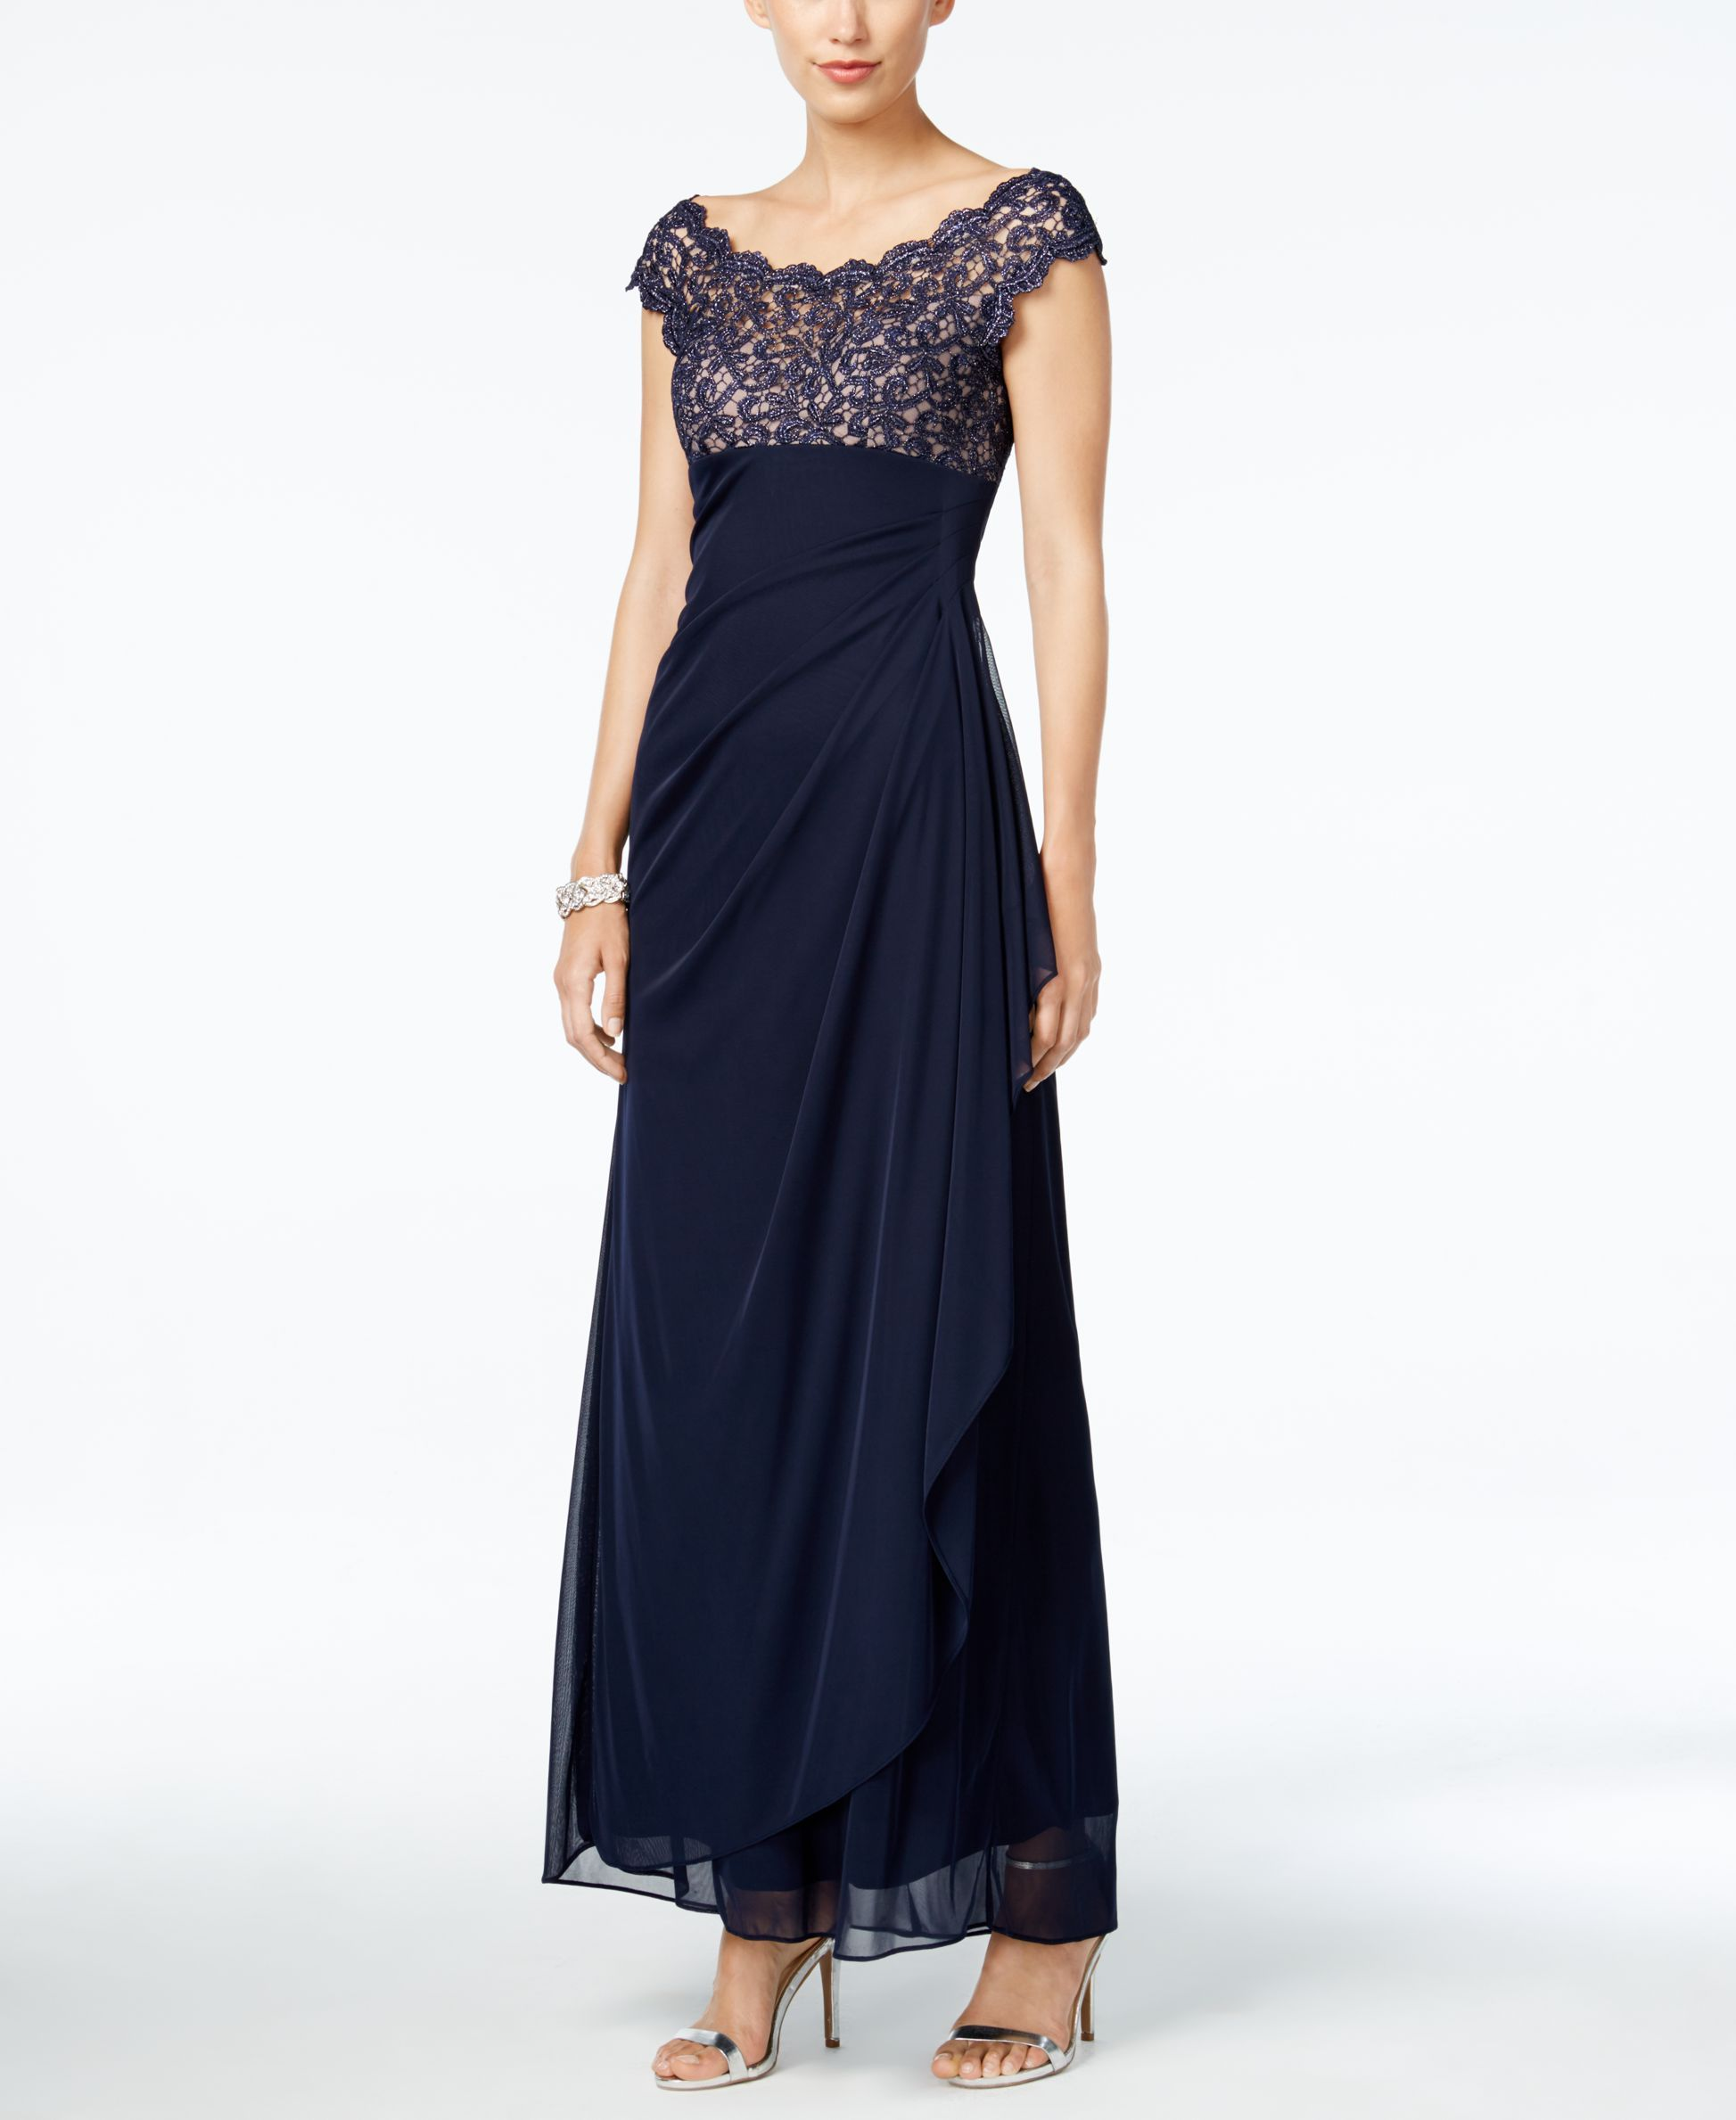 Xscape Petite Lace Illusion Faux-Wrap Gown - Dresses - Women